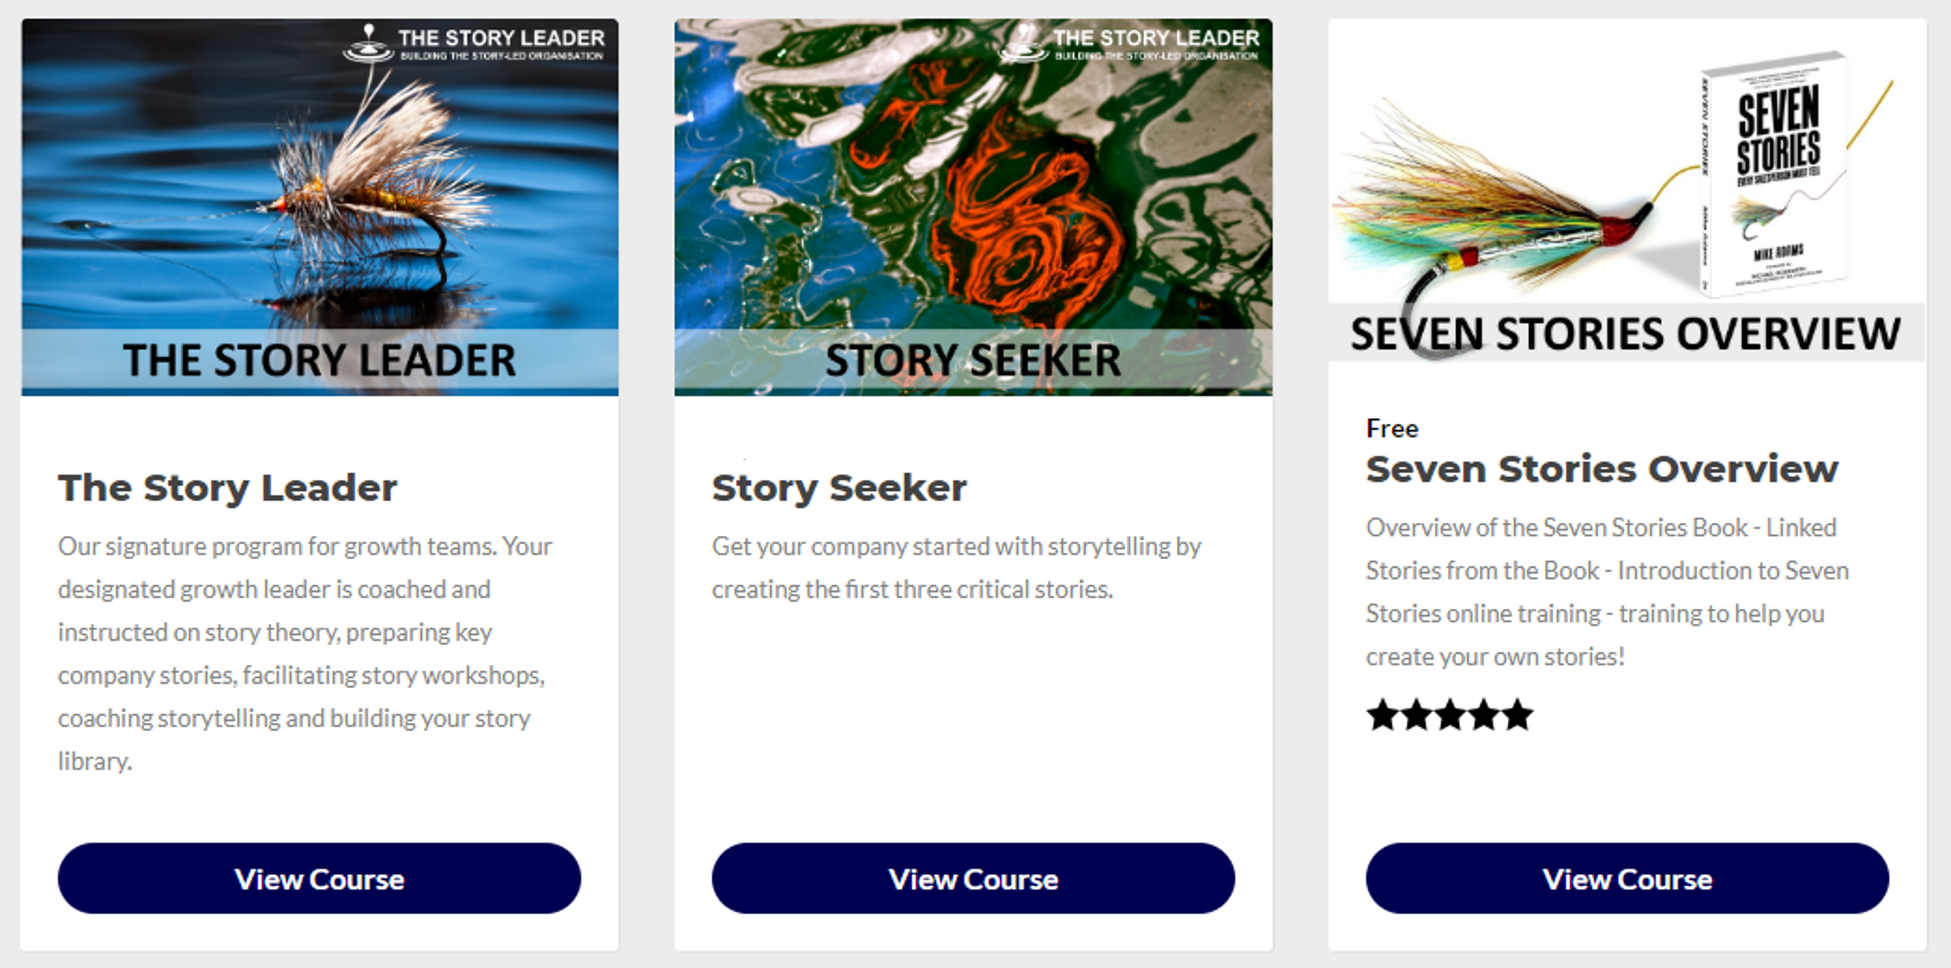 See the full suite of STORY courses at www.mysevenstories.com